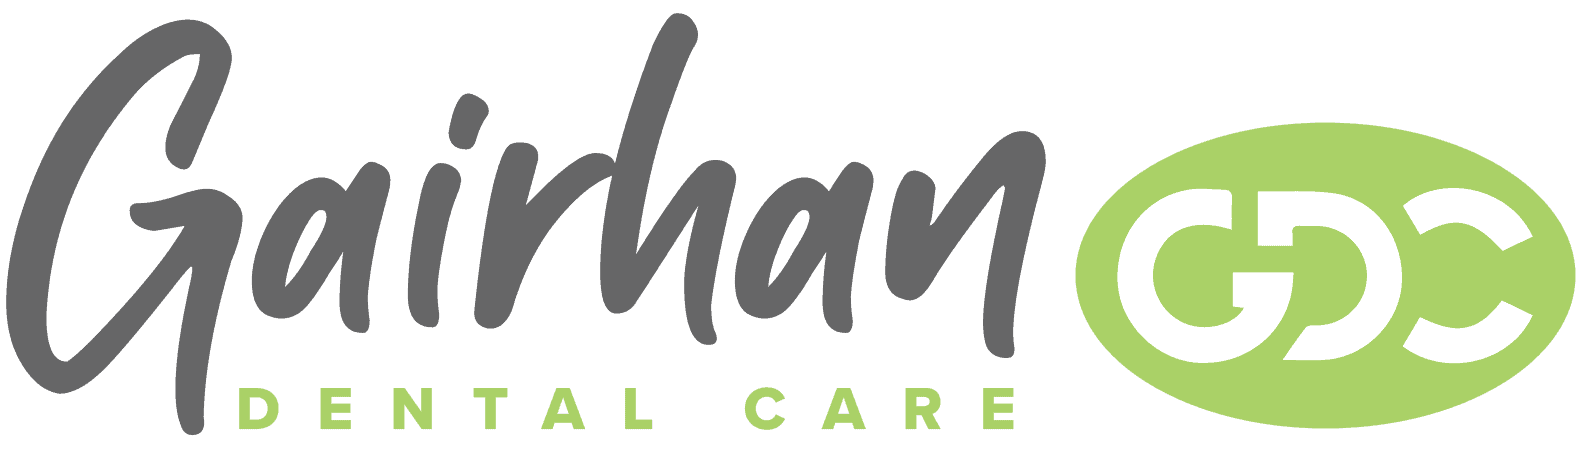 Gairhan Dental Care